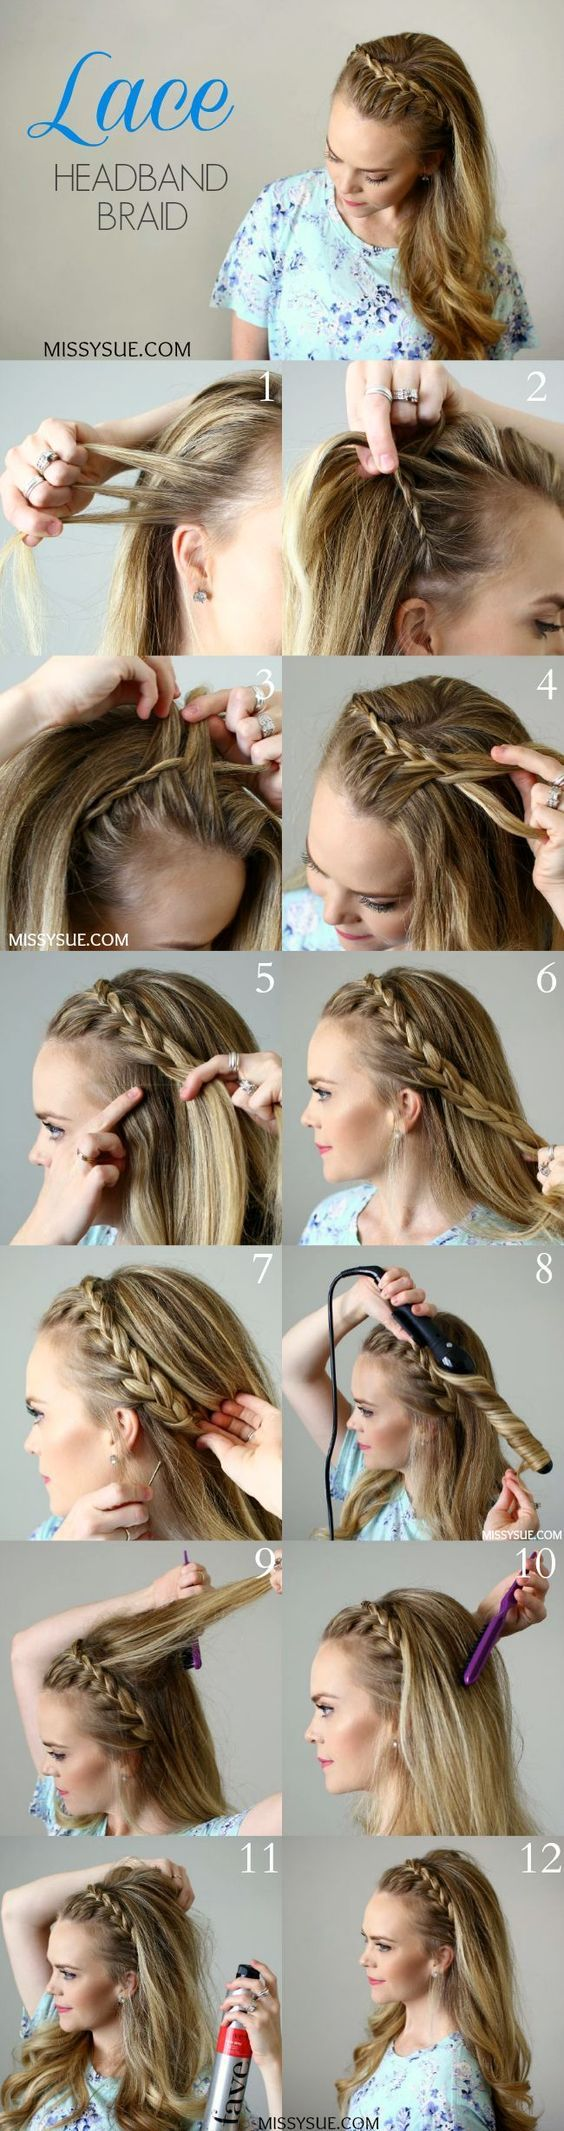 Super Easy DIY Braided Hairstyles for Wedding Tutorials | Pinterest ...